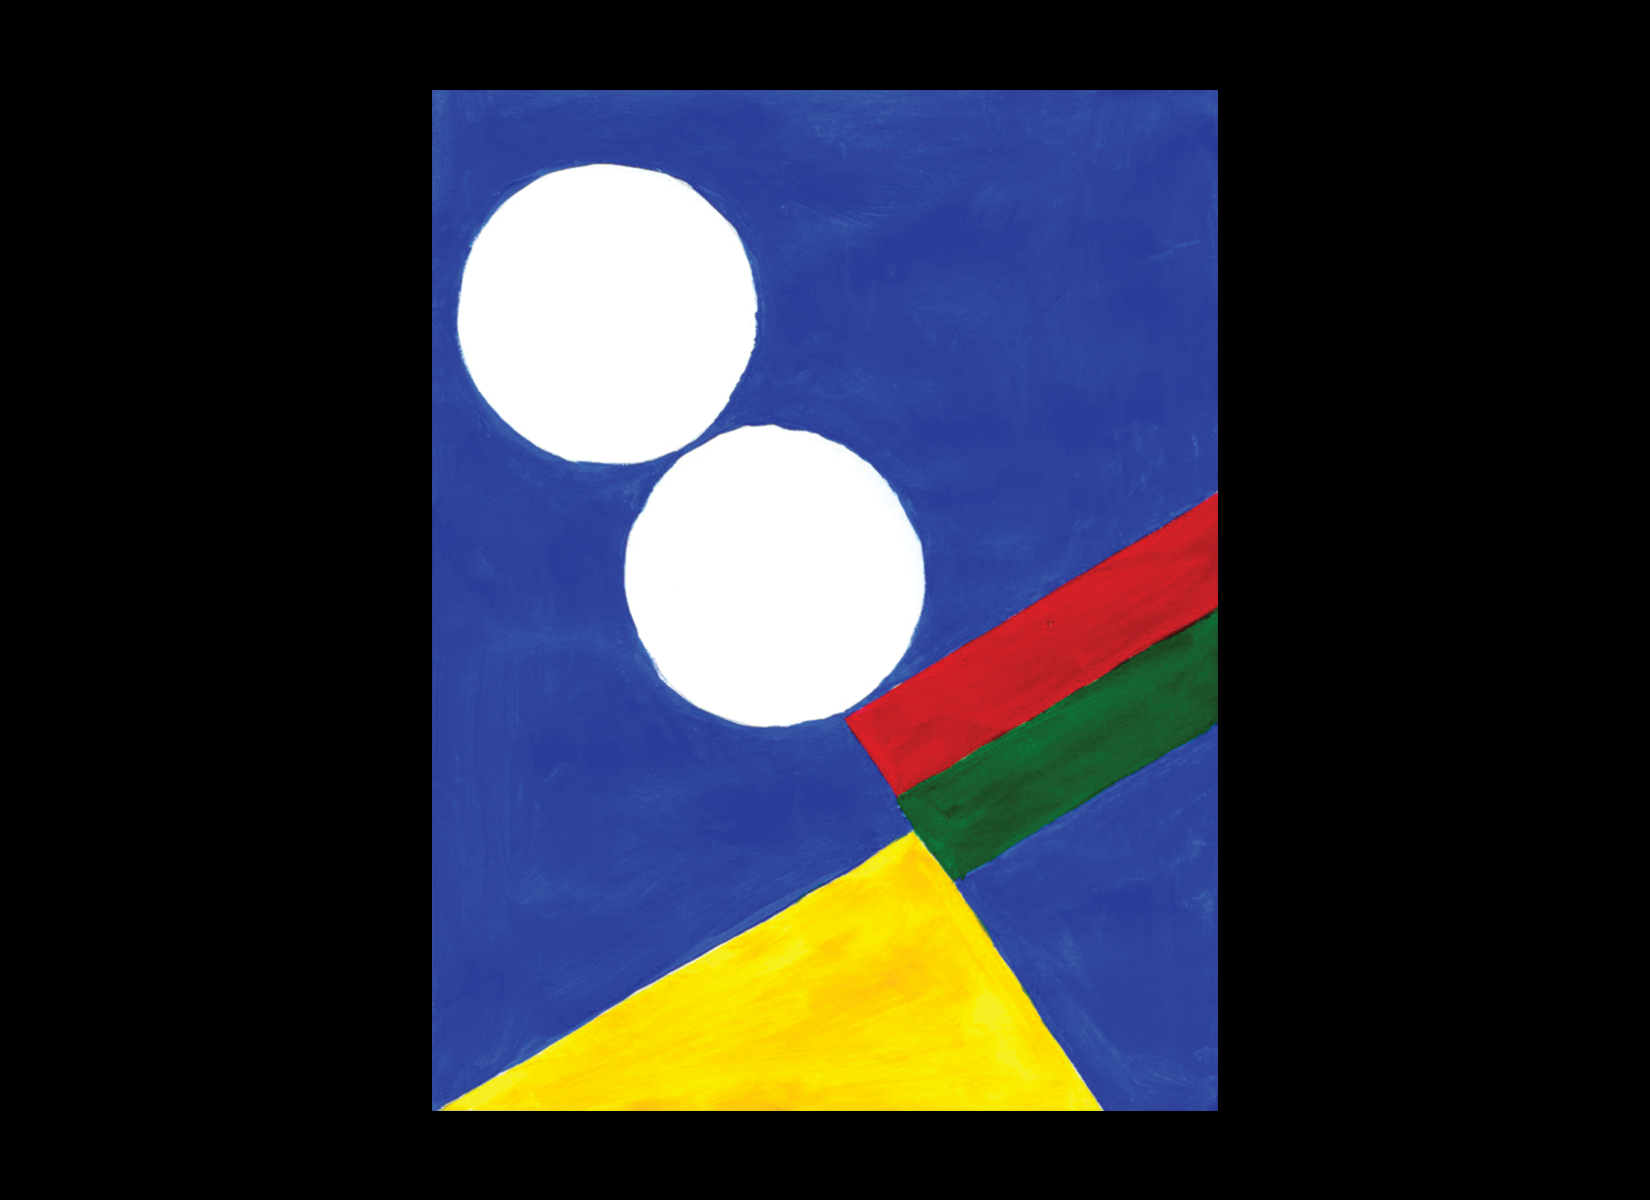 A STRUCTURE PAINTING